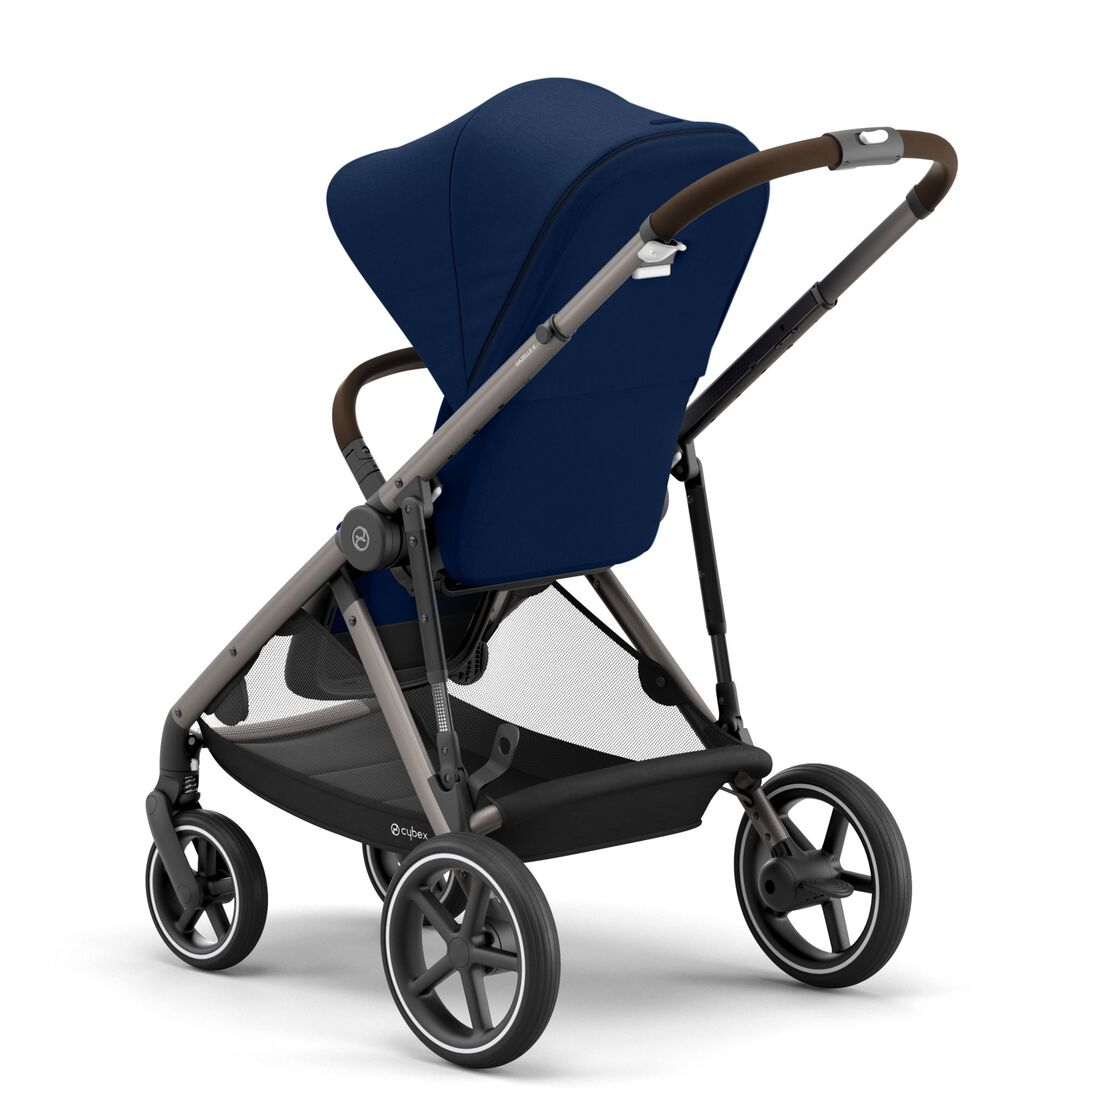 CYBEX Gazelle S - Navy Blue (Taupe Frame) in Navy Blue (Taupe Frame) large Bild 6